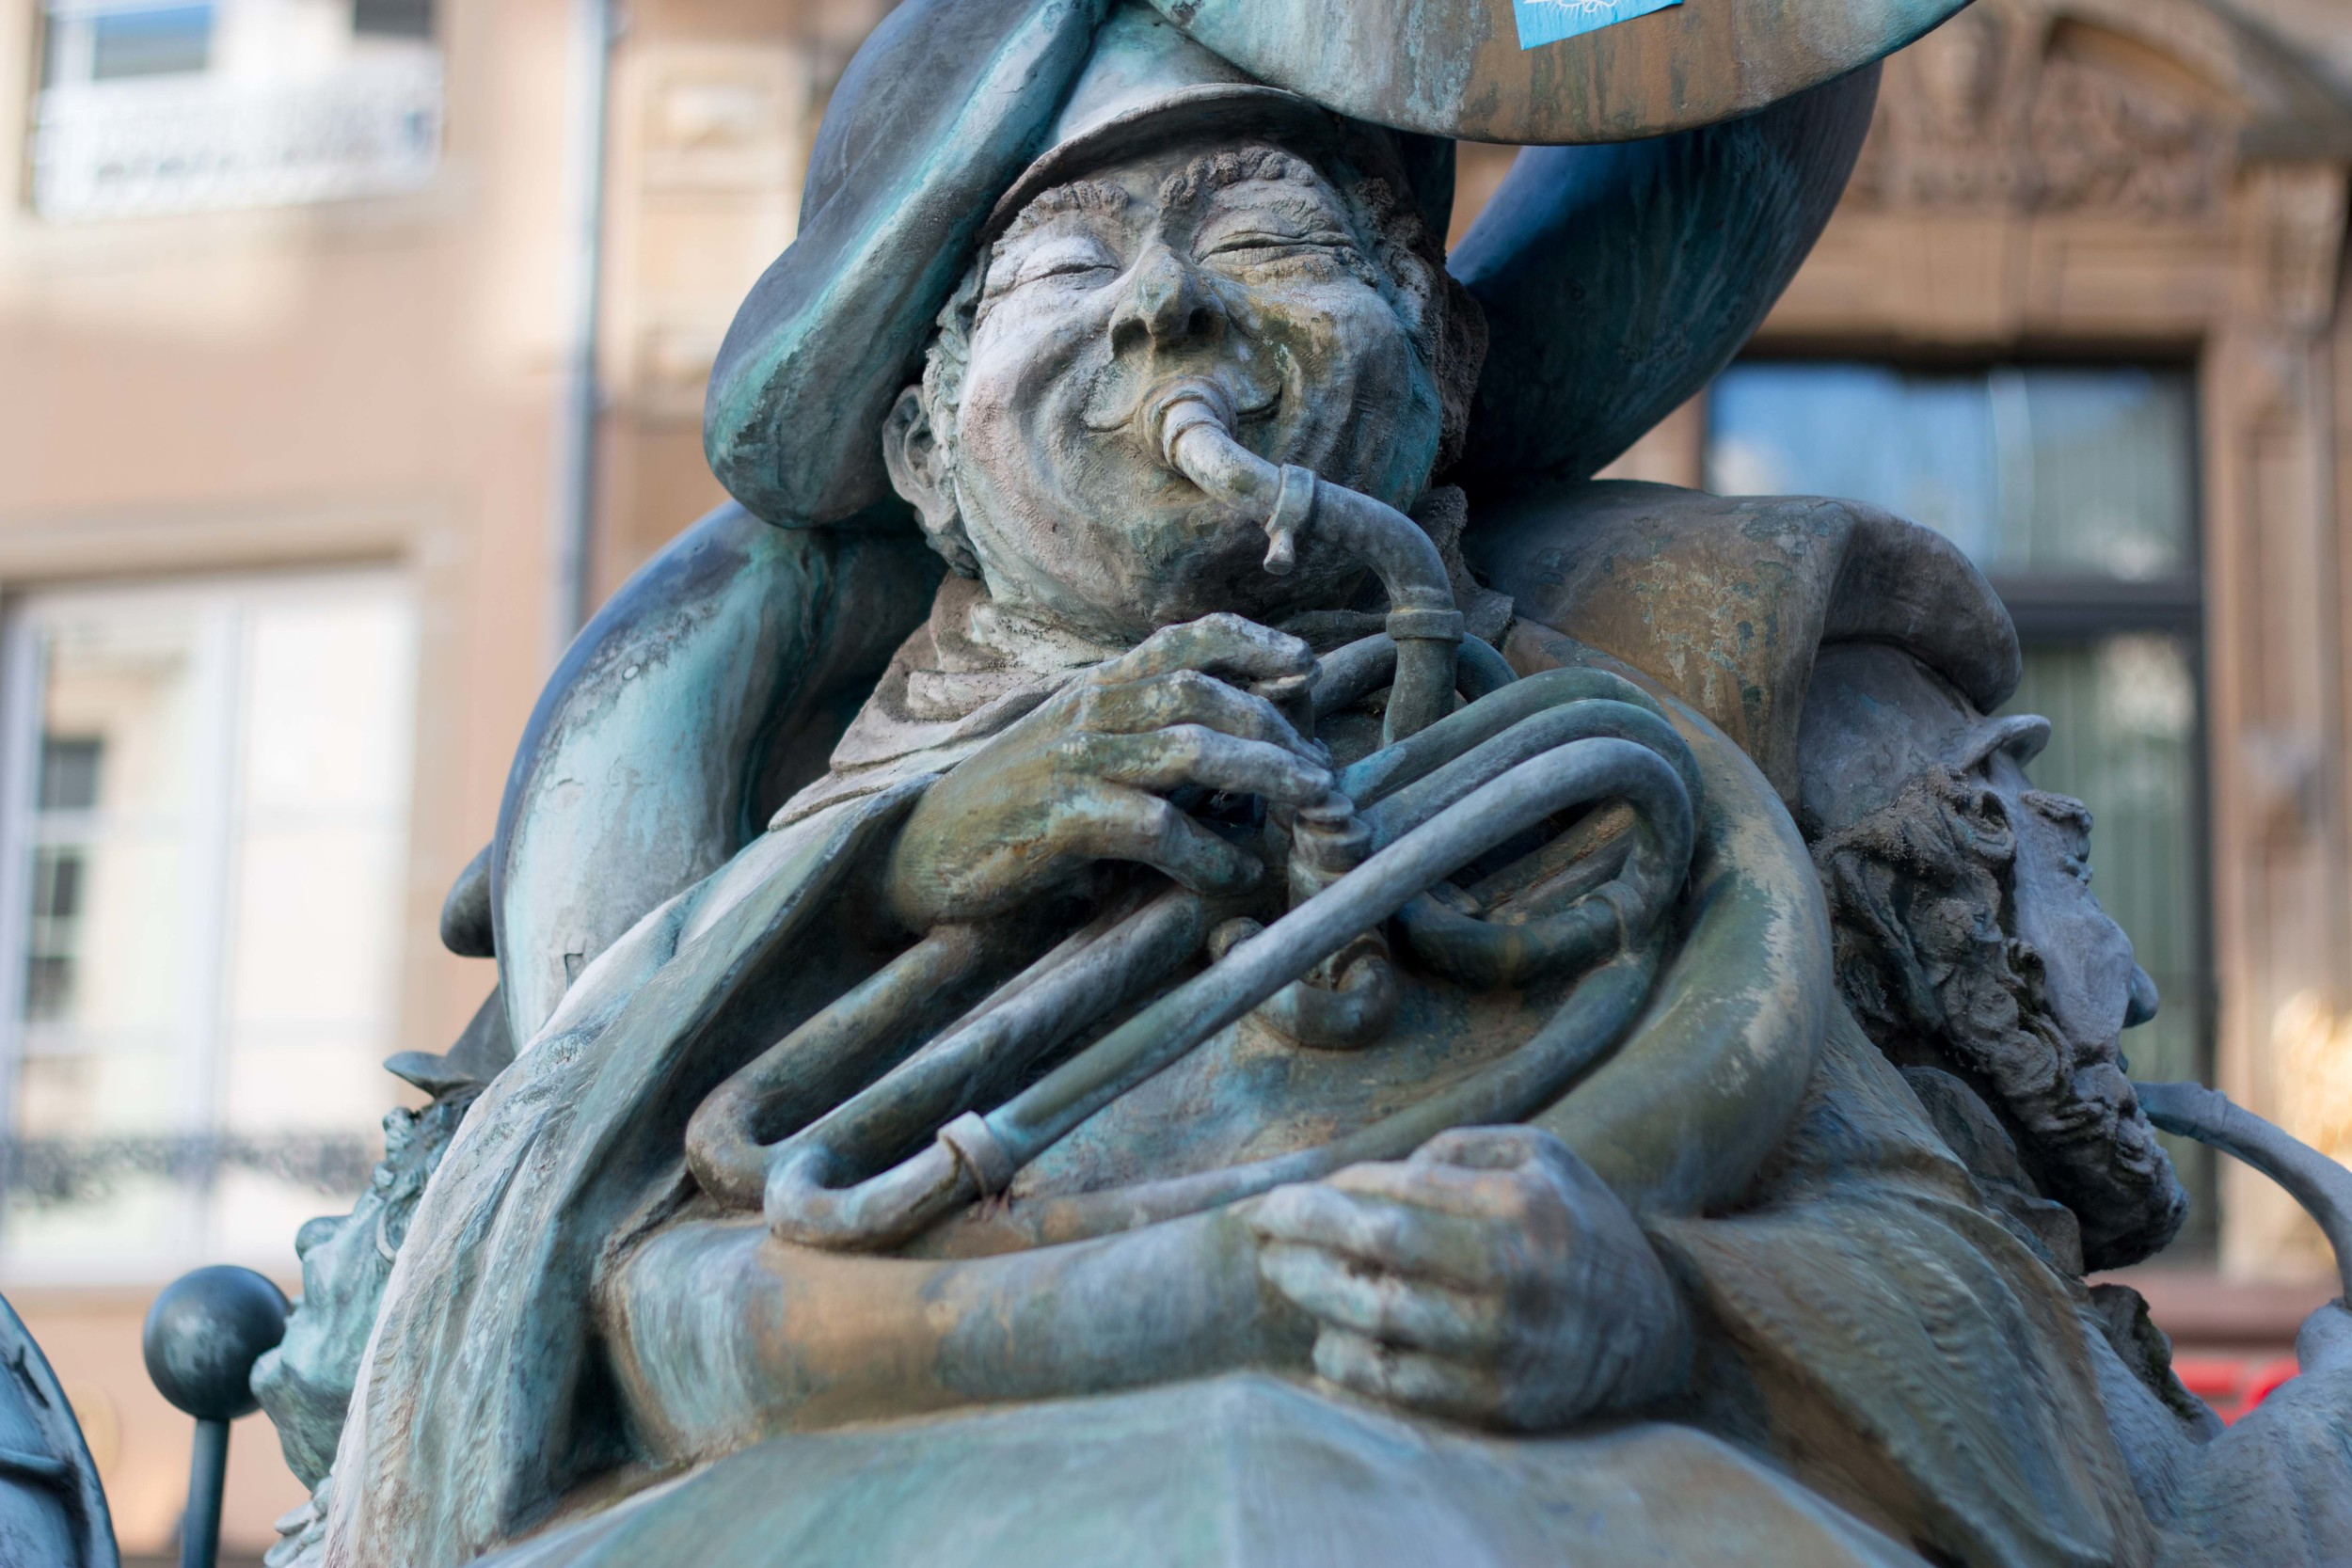 One of the three musicians in the Hämmelsmarsch statue in the city center. This one is a self portrait of the artist himself